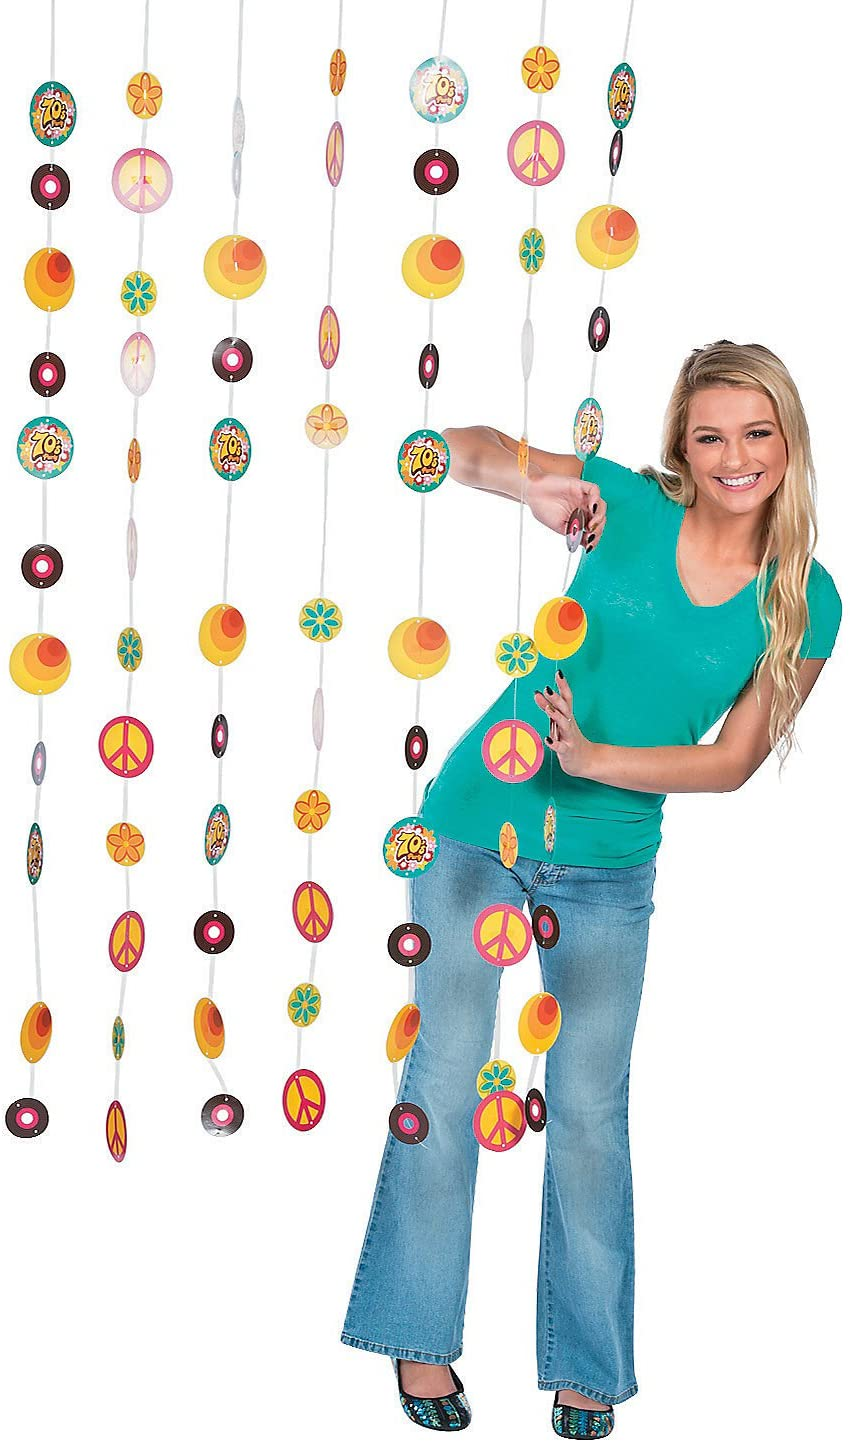 Fun Express - 70's Party Door Curtain for Party - Party Decor - Door Decor - Door Borders & Curtains - Party - 1 Piece